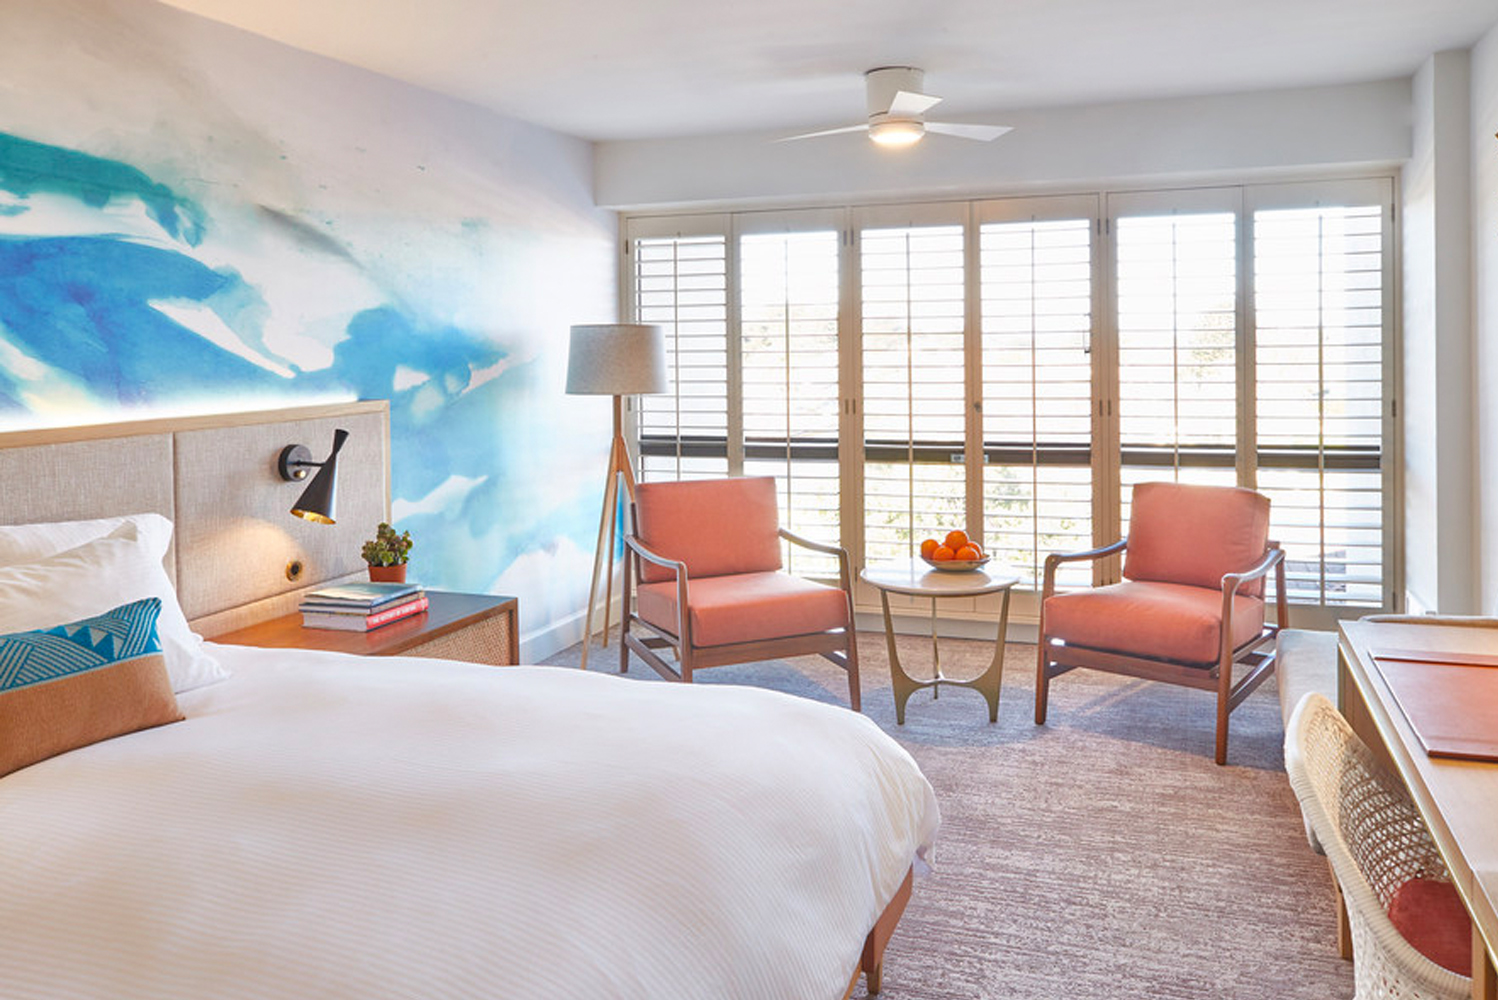 Portola Hotel & Spa, the Four-Diamond hotel situated along Central California's Monterey Bay, is undergoing renovations.